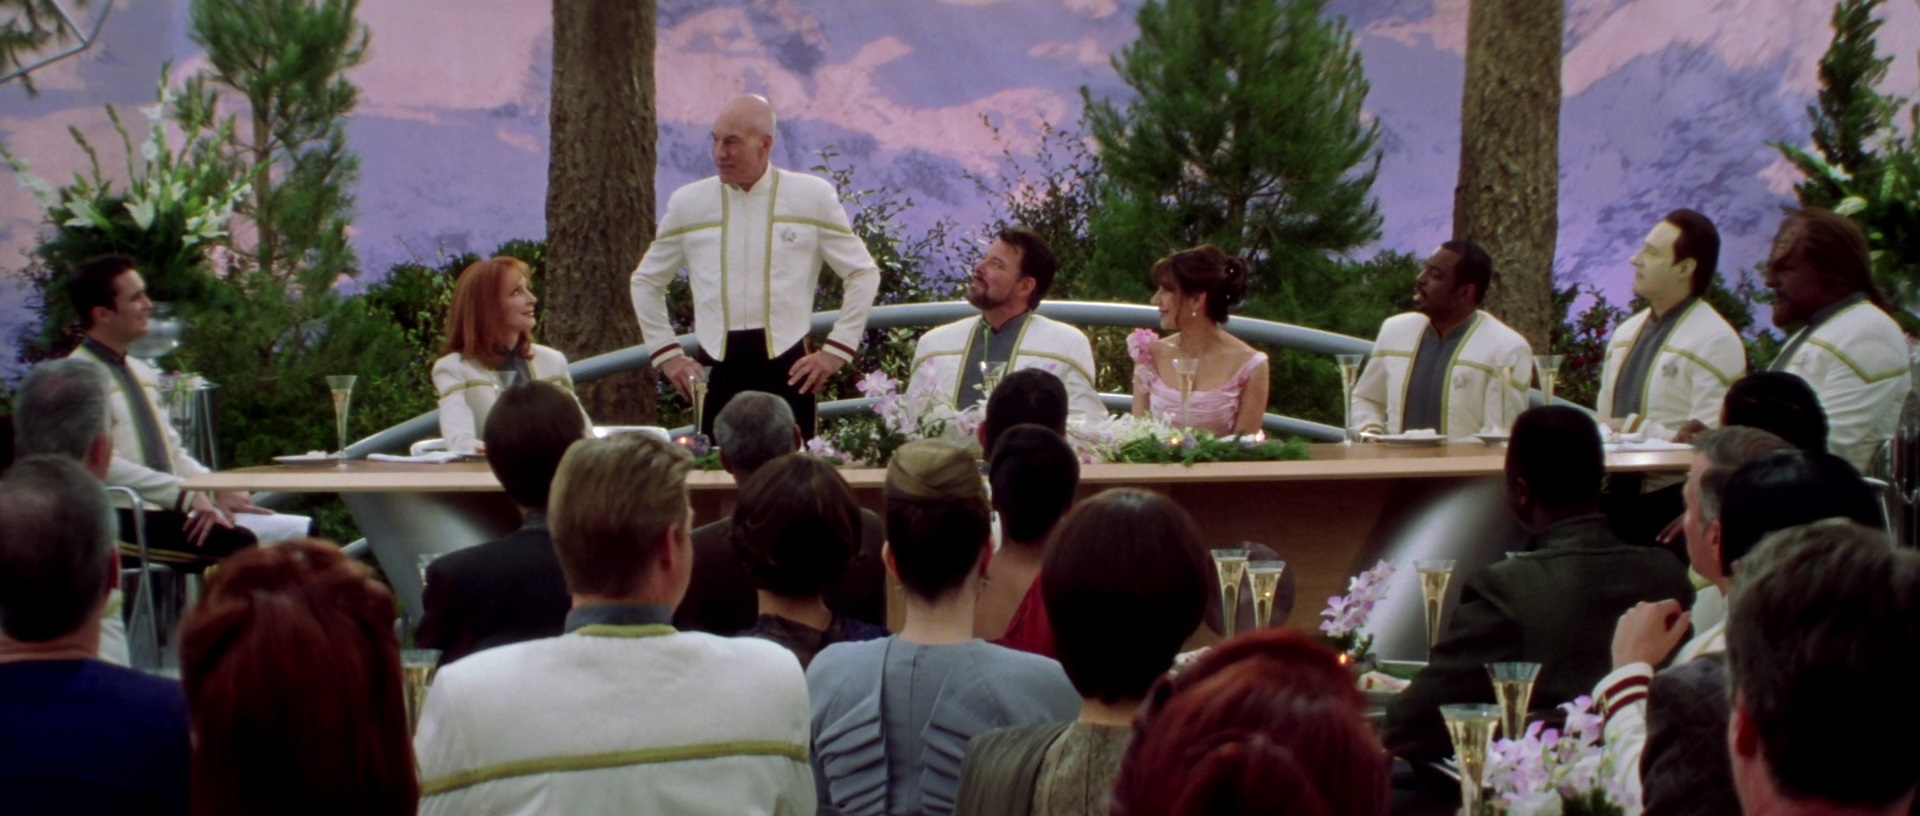 Riker-Troi_wedding.jpg